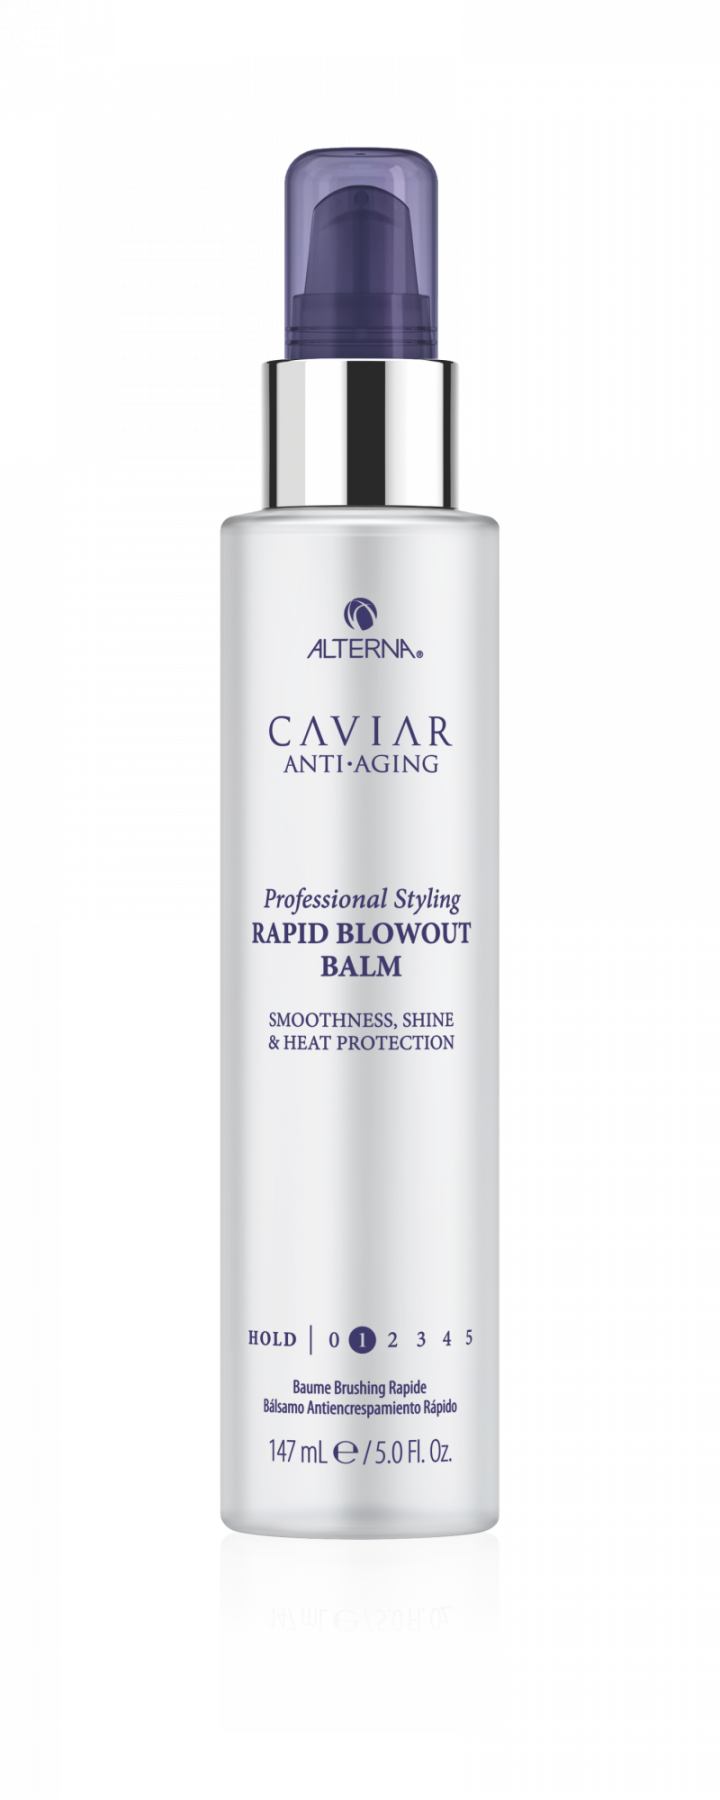 Caviar Anti-Aging PROFESSIONAL STYLING Rapid Blowout Balm